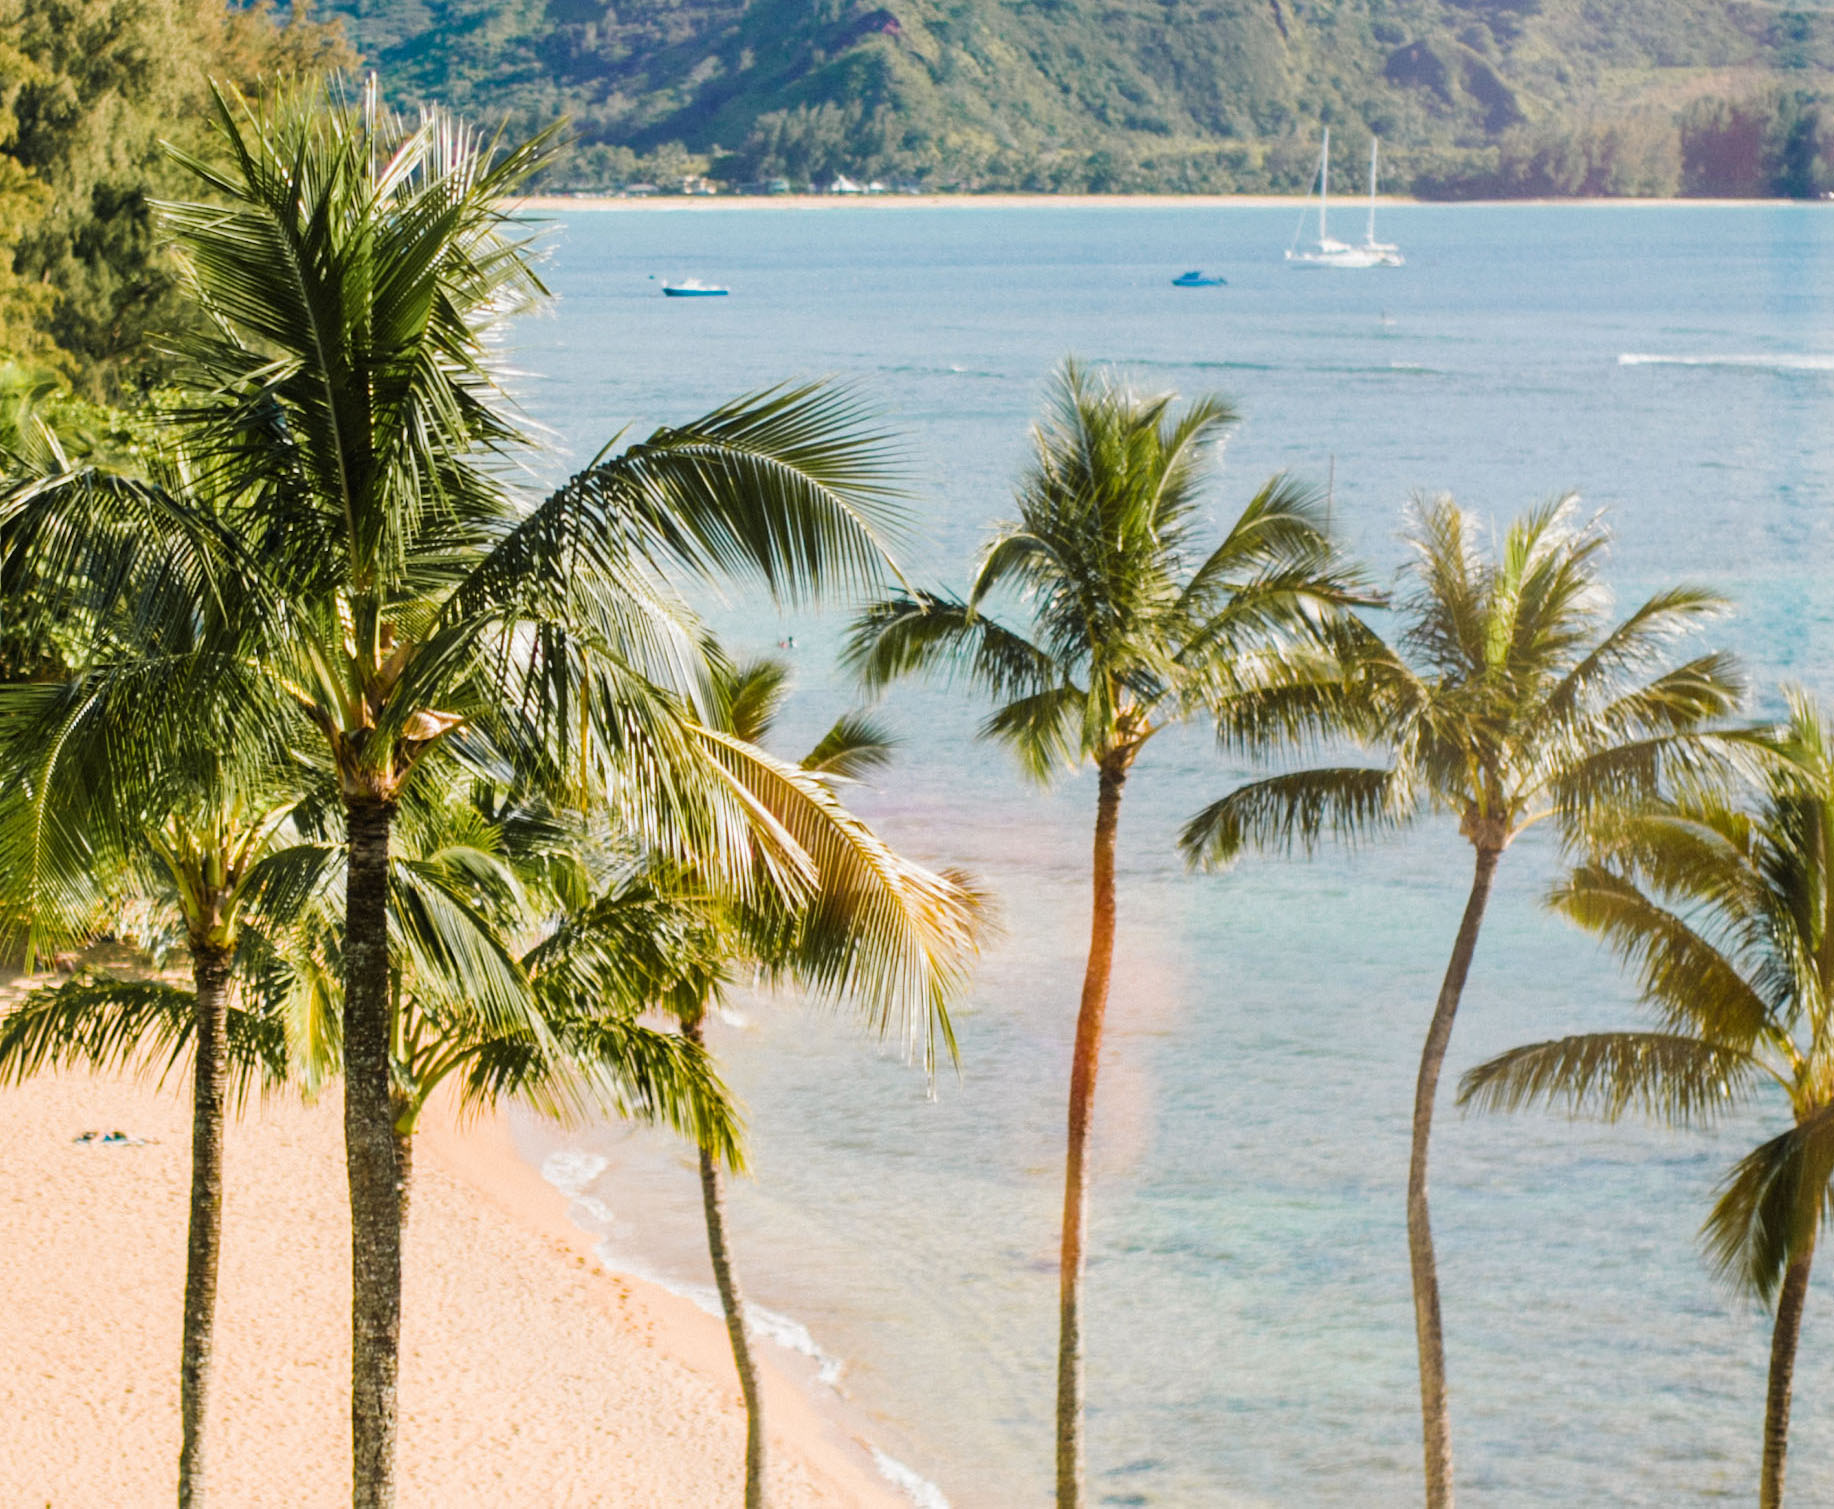 palm trees overlooking ocean in hawaii, how to prep for your honeymoon